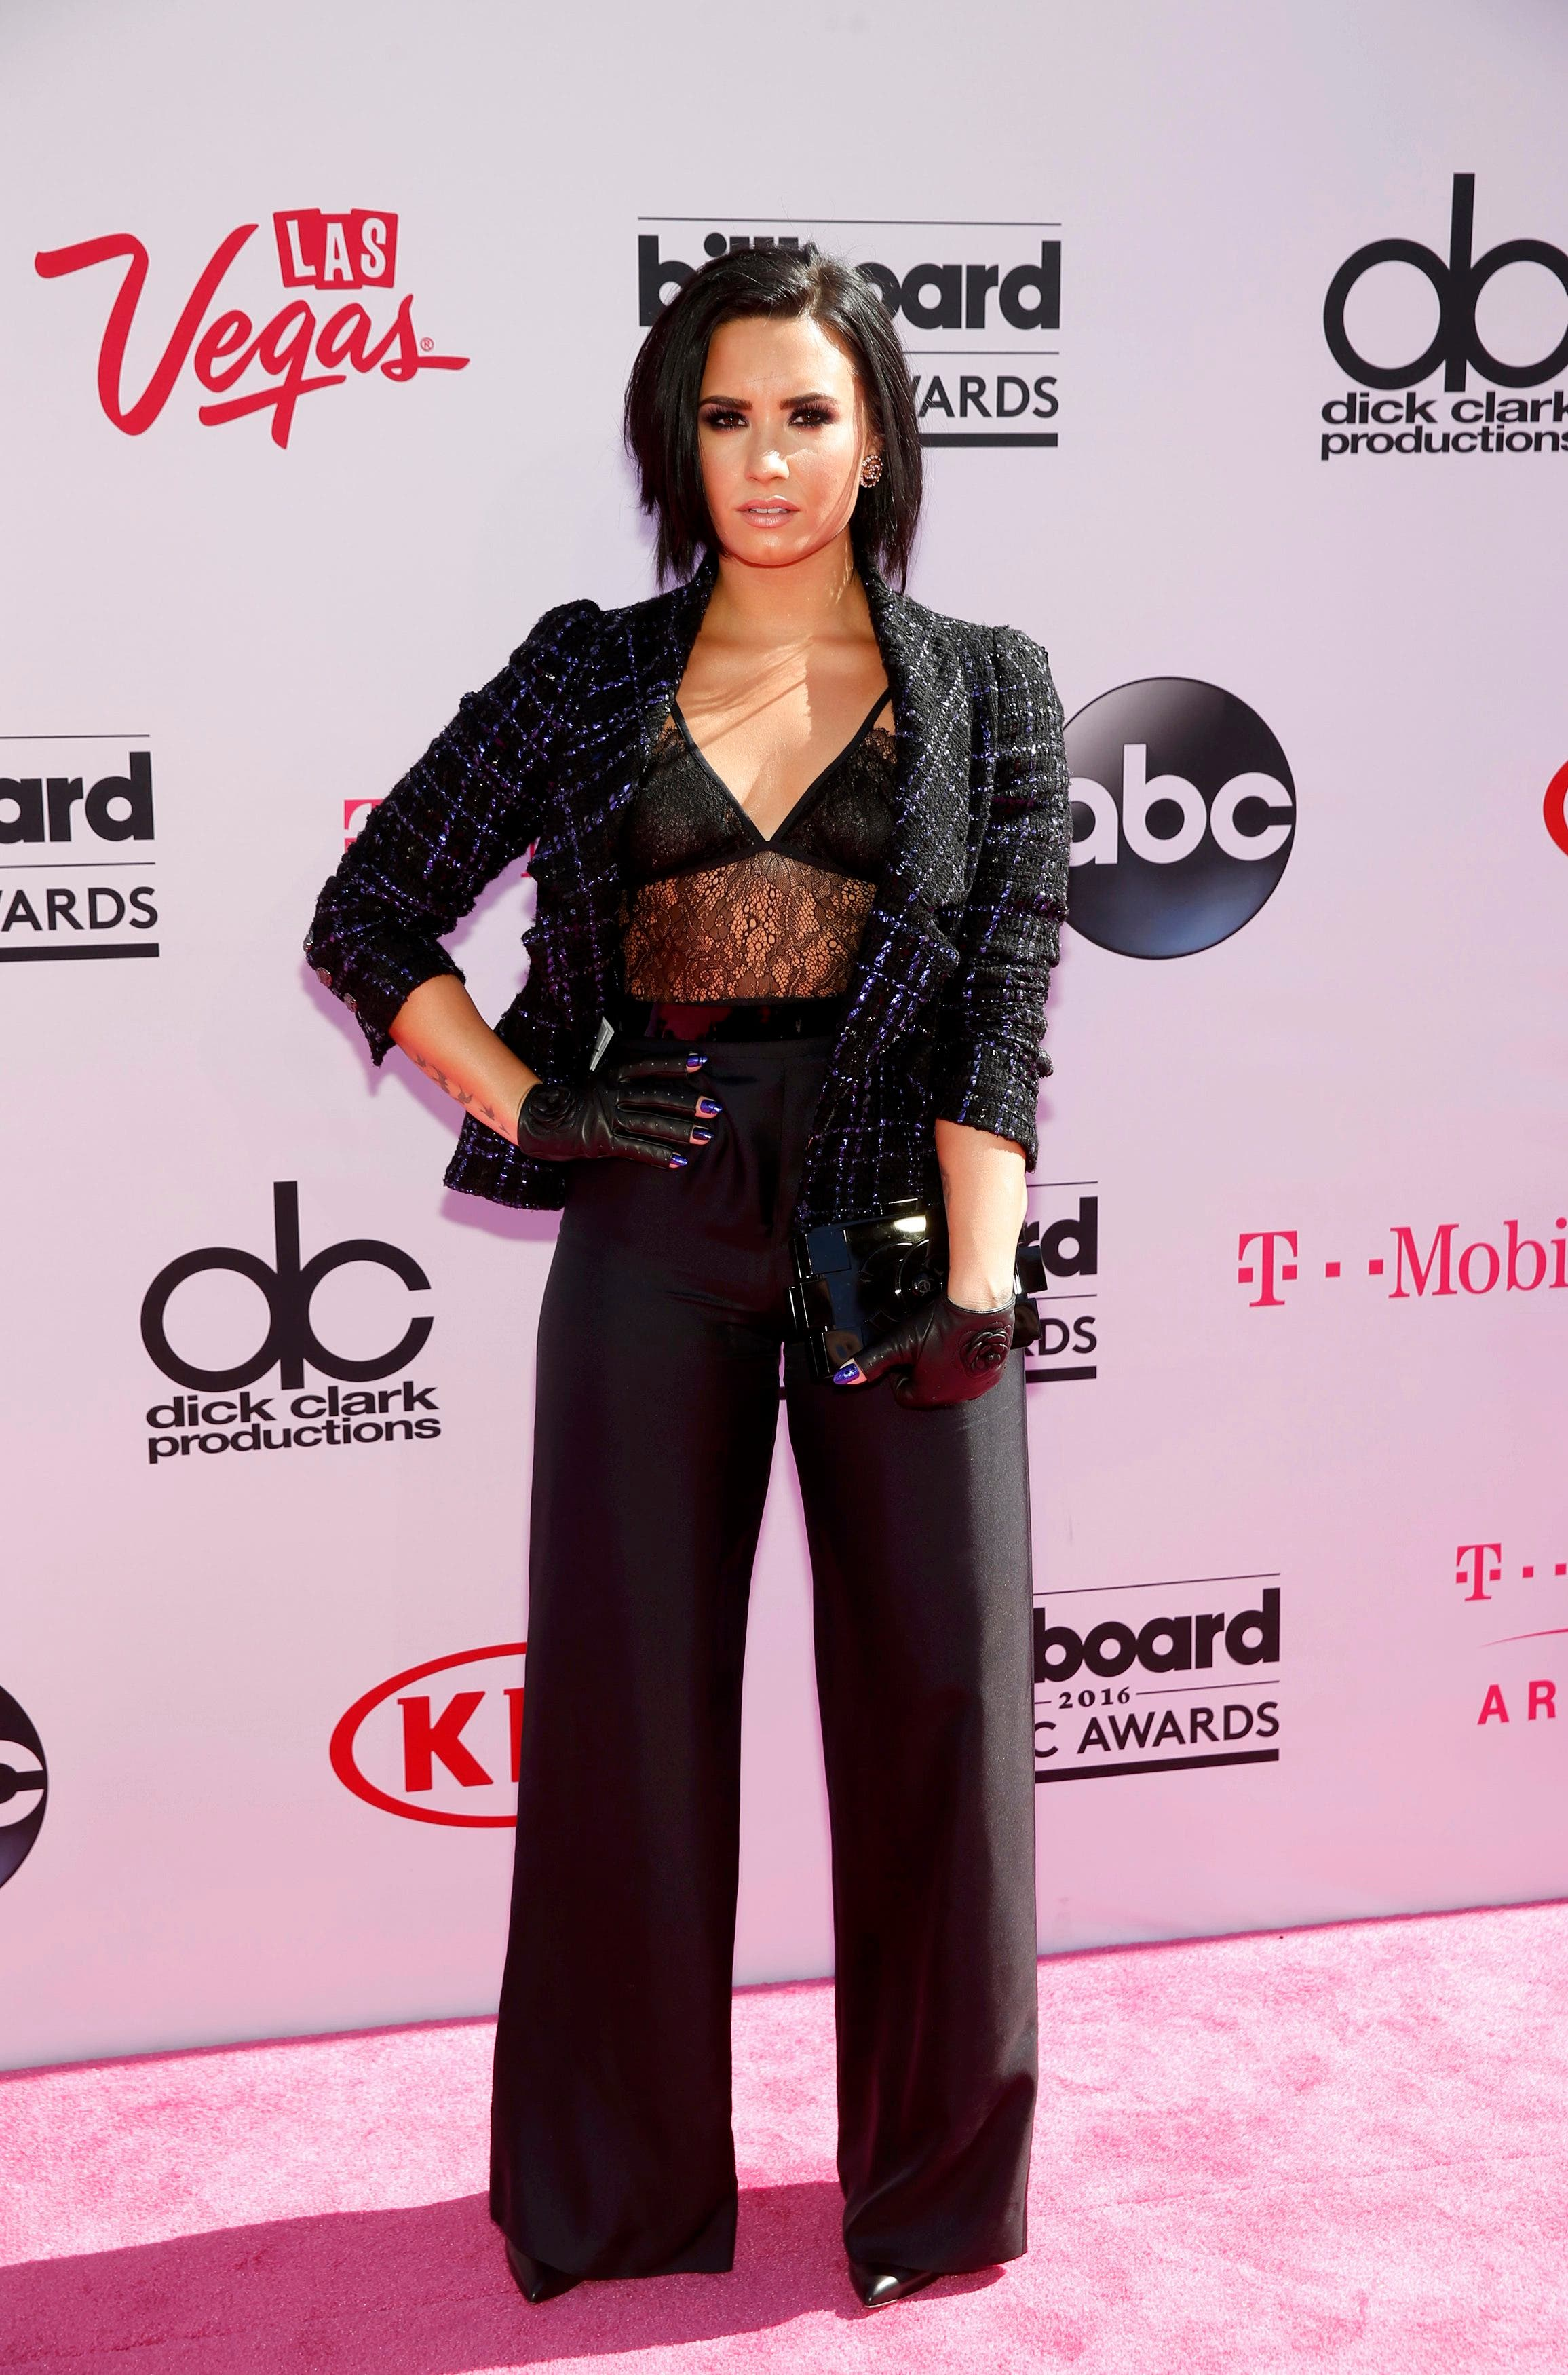 Singer Demi Lovato arrives at the 2016 Billboard Awards in Las Vegas, Nevada, US, May 22, 2016. (Reuters)